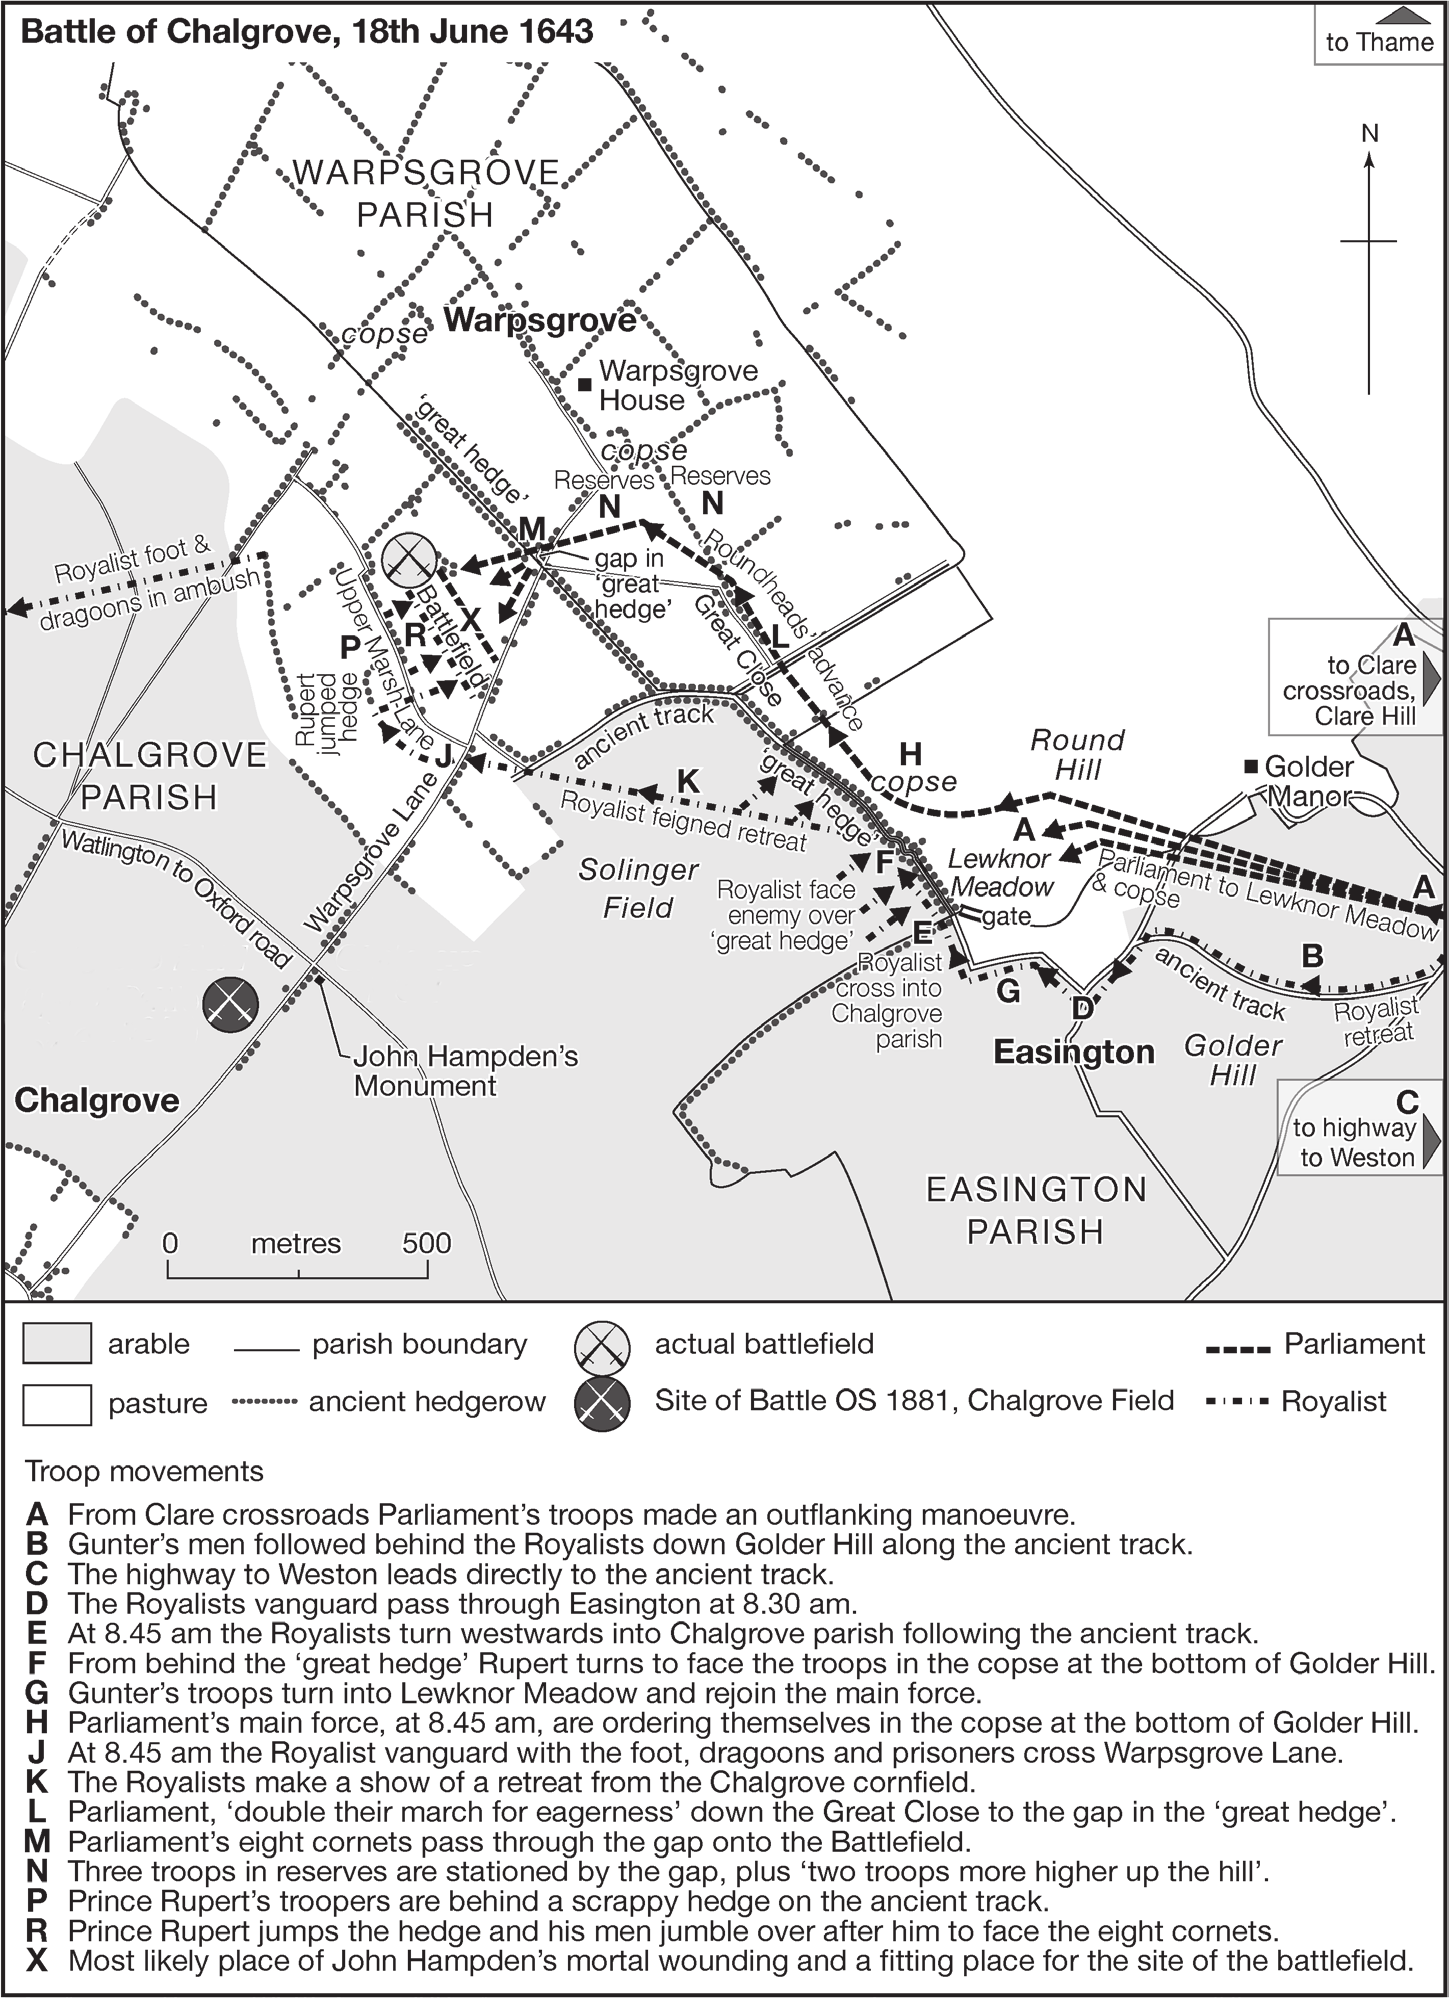 Map Showing Troop Movements during the Battle of Chalgrove